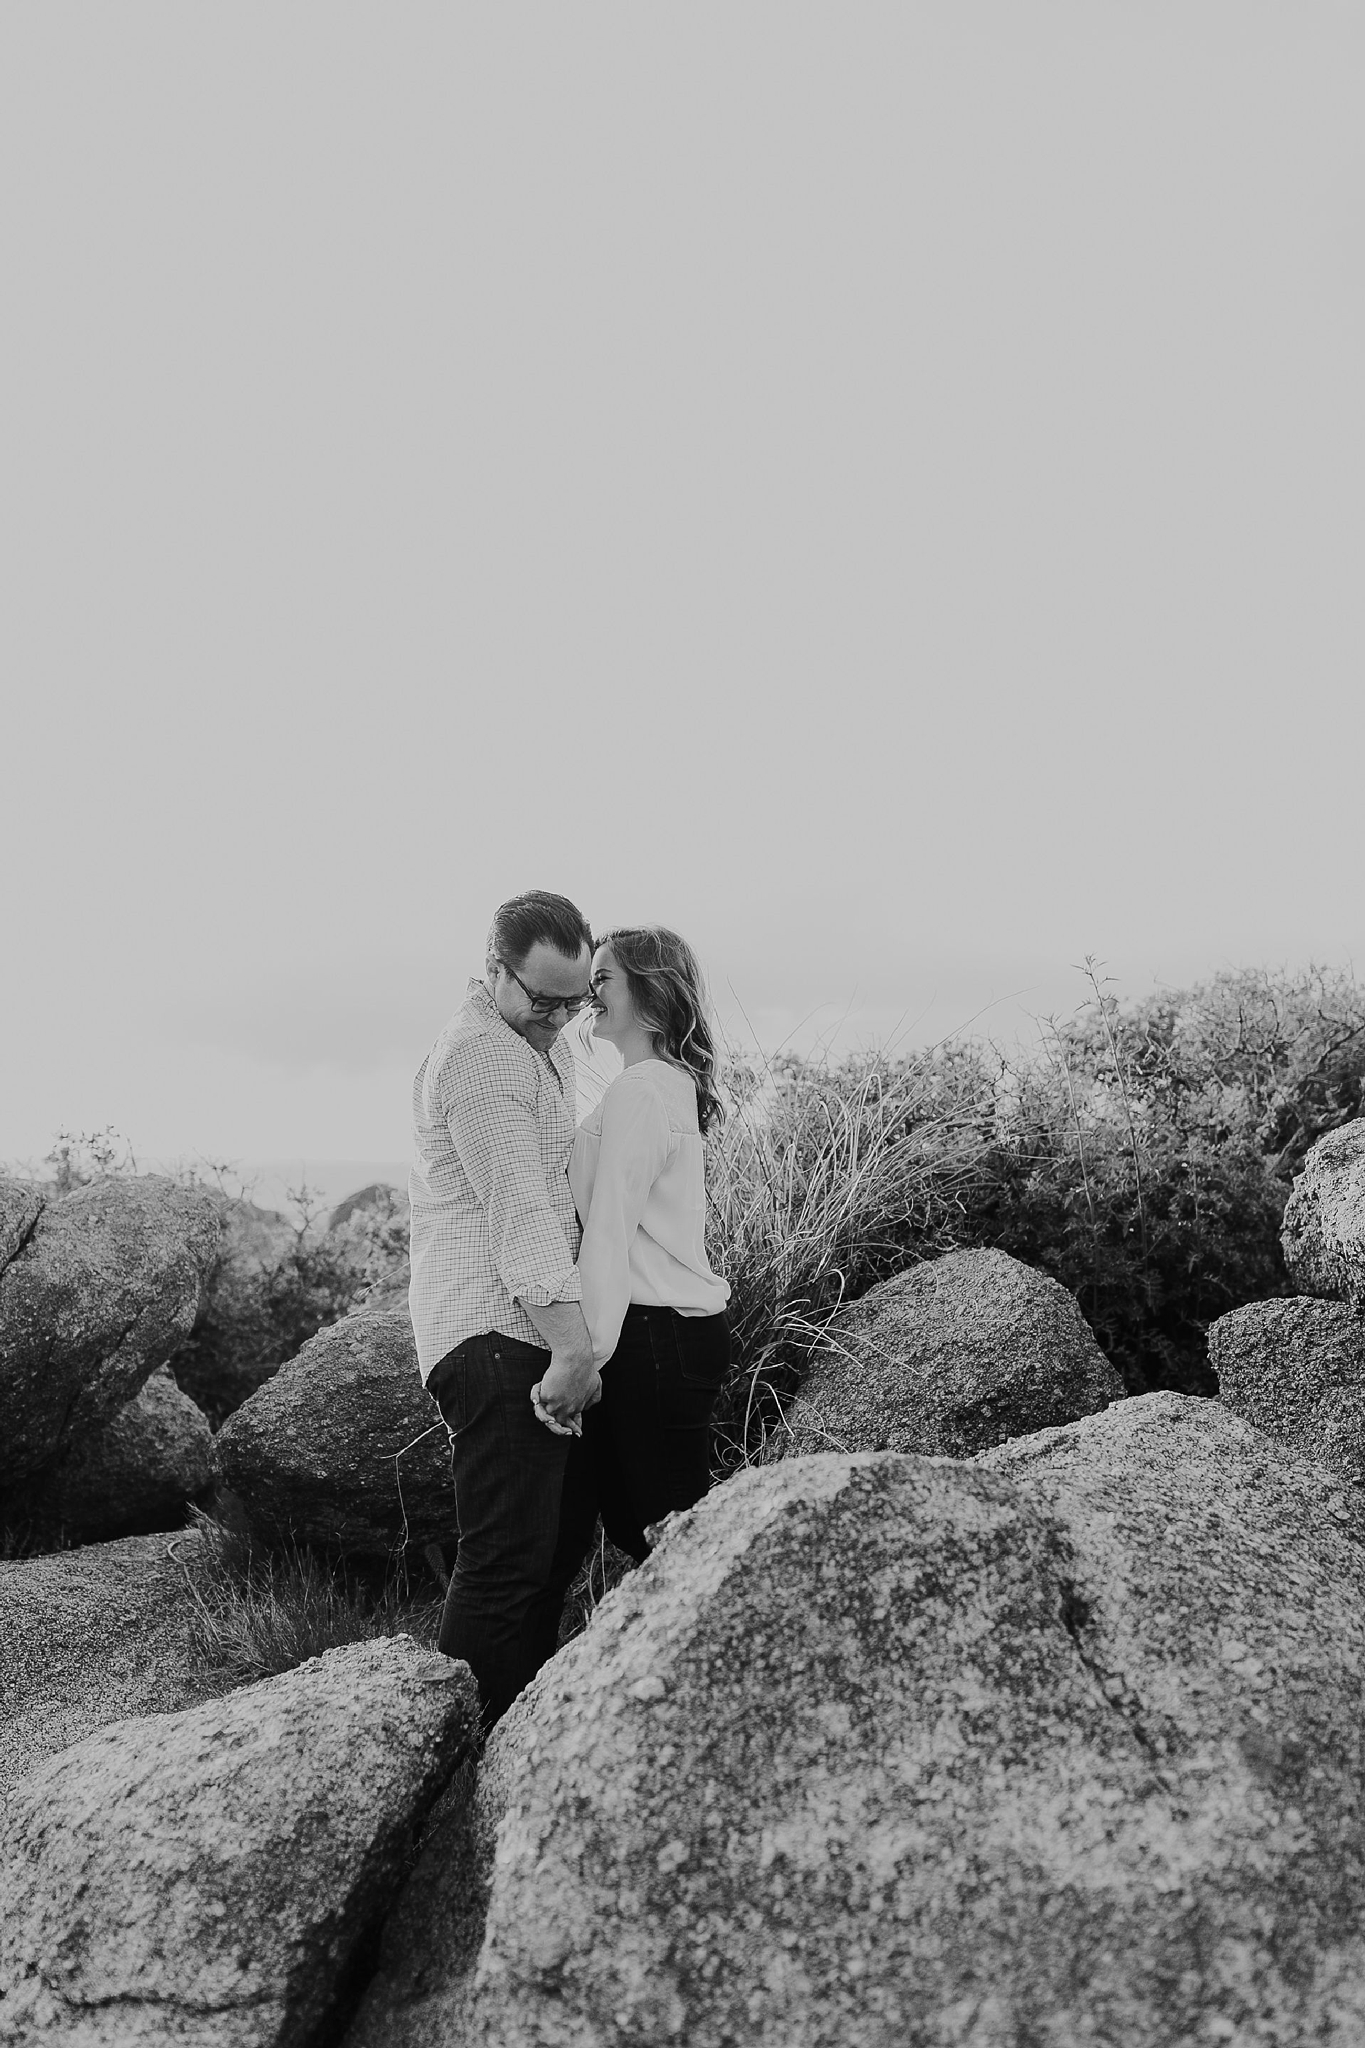 Alicia+lucia+photography+-+albuquerque+wedding+photographer+-+santa+fe+wedding+photography+-+new+mexico+wedding+photographer+-+new+mexico+wedding+-+new+mexico+engagement+-+engagement+photographer+-+mountain+engagement+-+desert+engagement_0002.jpg